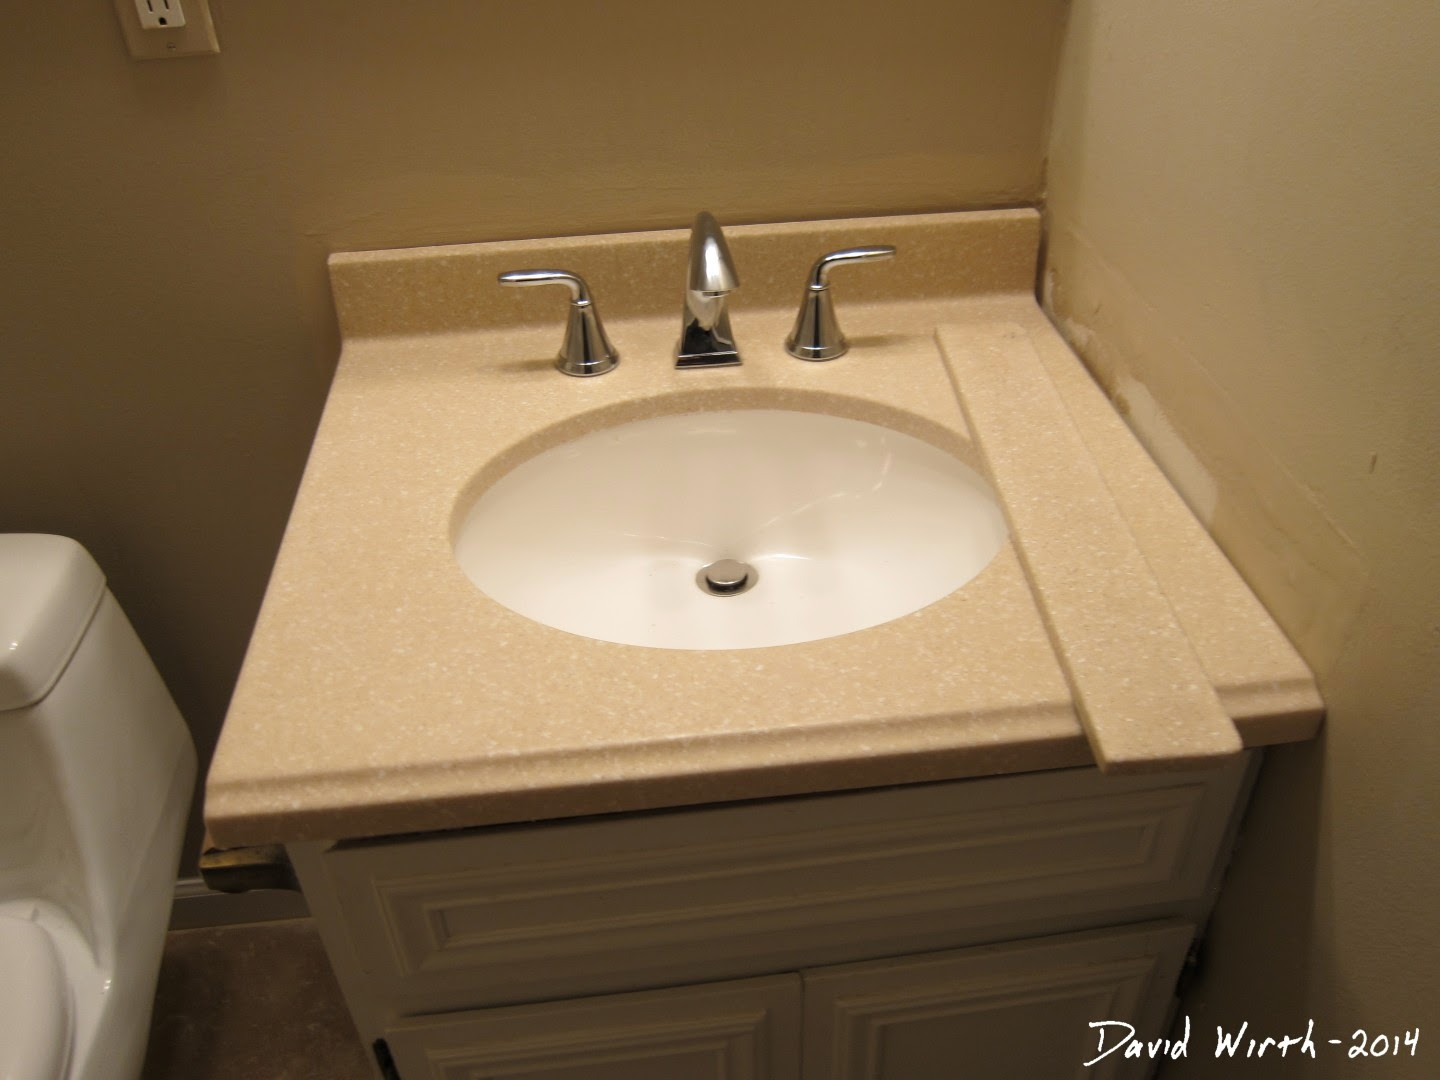 how to install sink backsplash, caulk